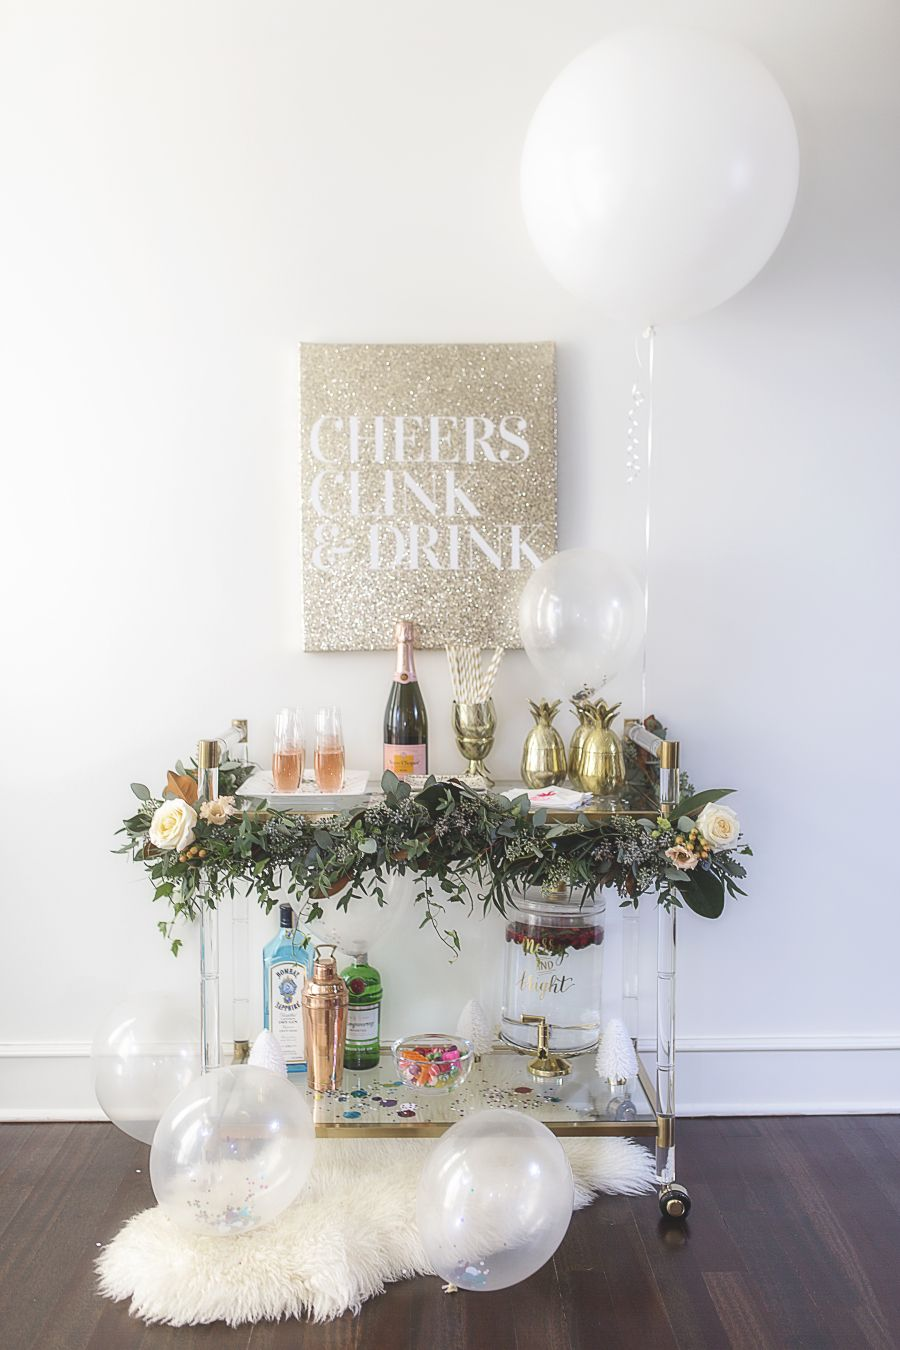 A festive bar cart perfect for all of your new yearus celebrations